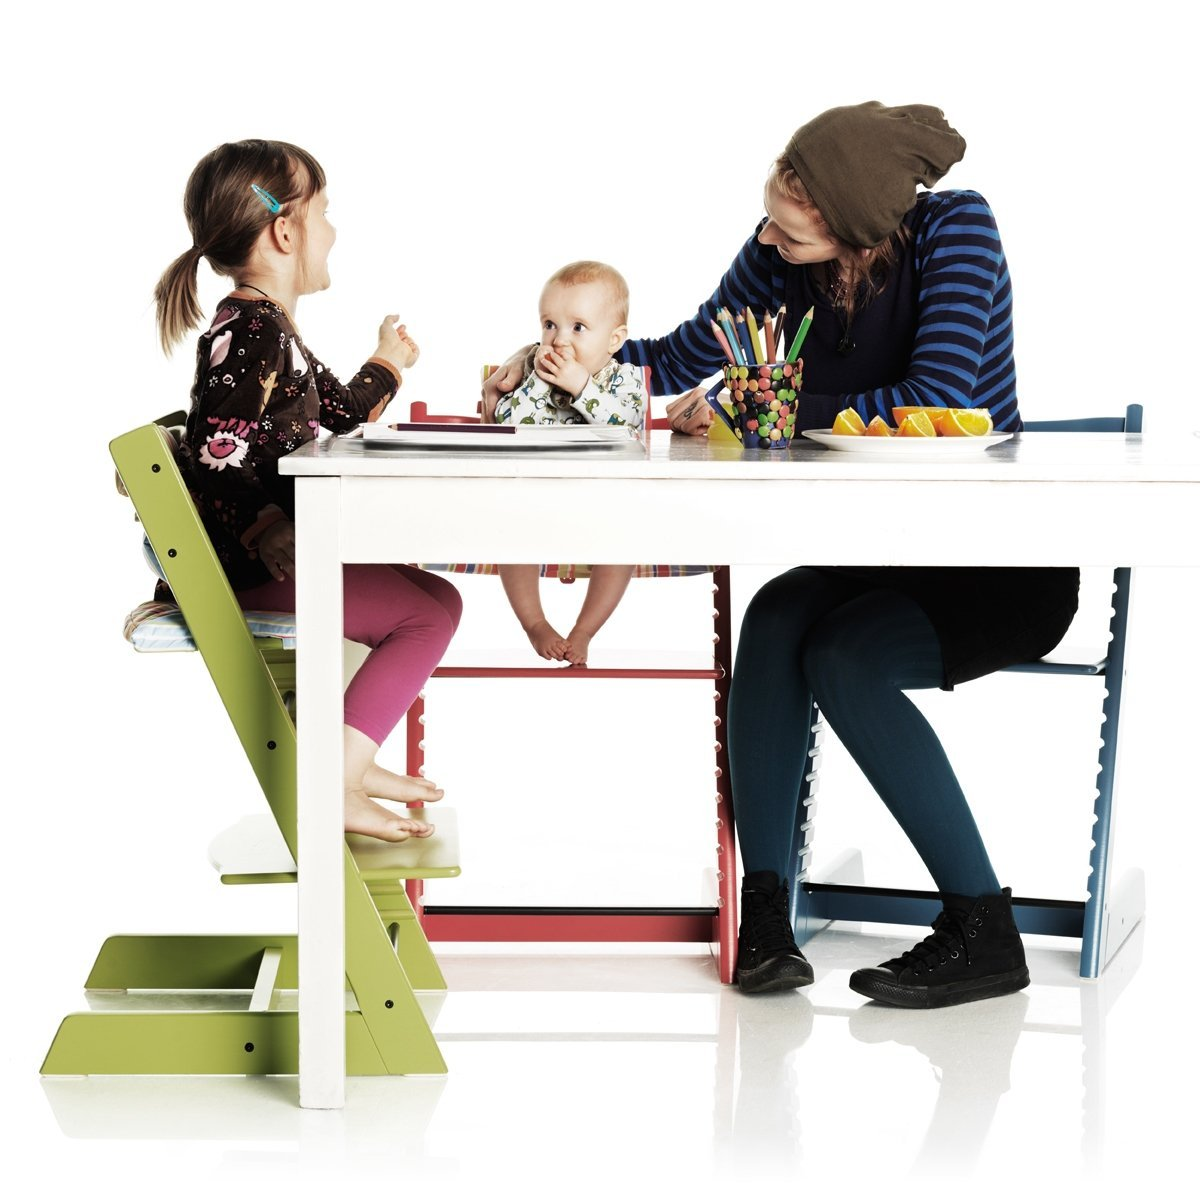 Stokke tripp trapp high chair stokke tripp trapp high chair for Stokke usato tripp trapp